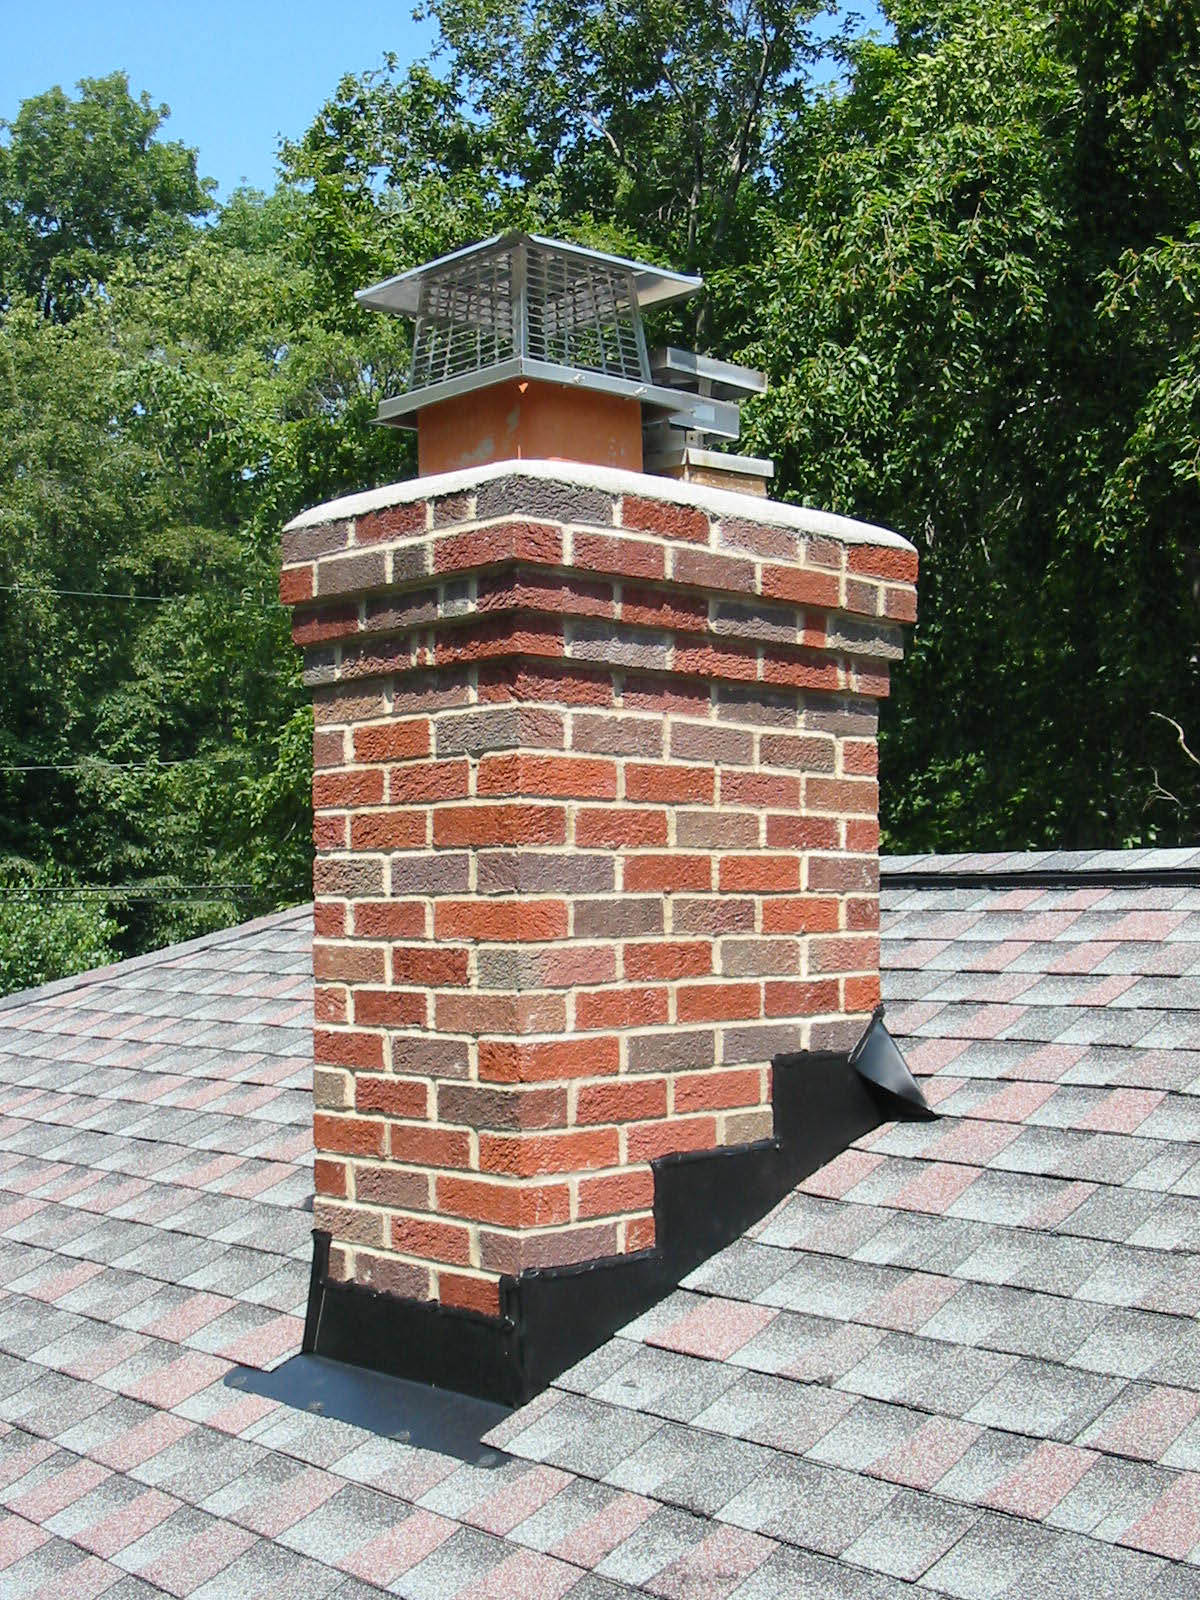 Quality fireplace & chimney repair and fix rook leaks in Racine, WI